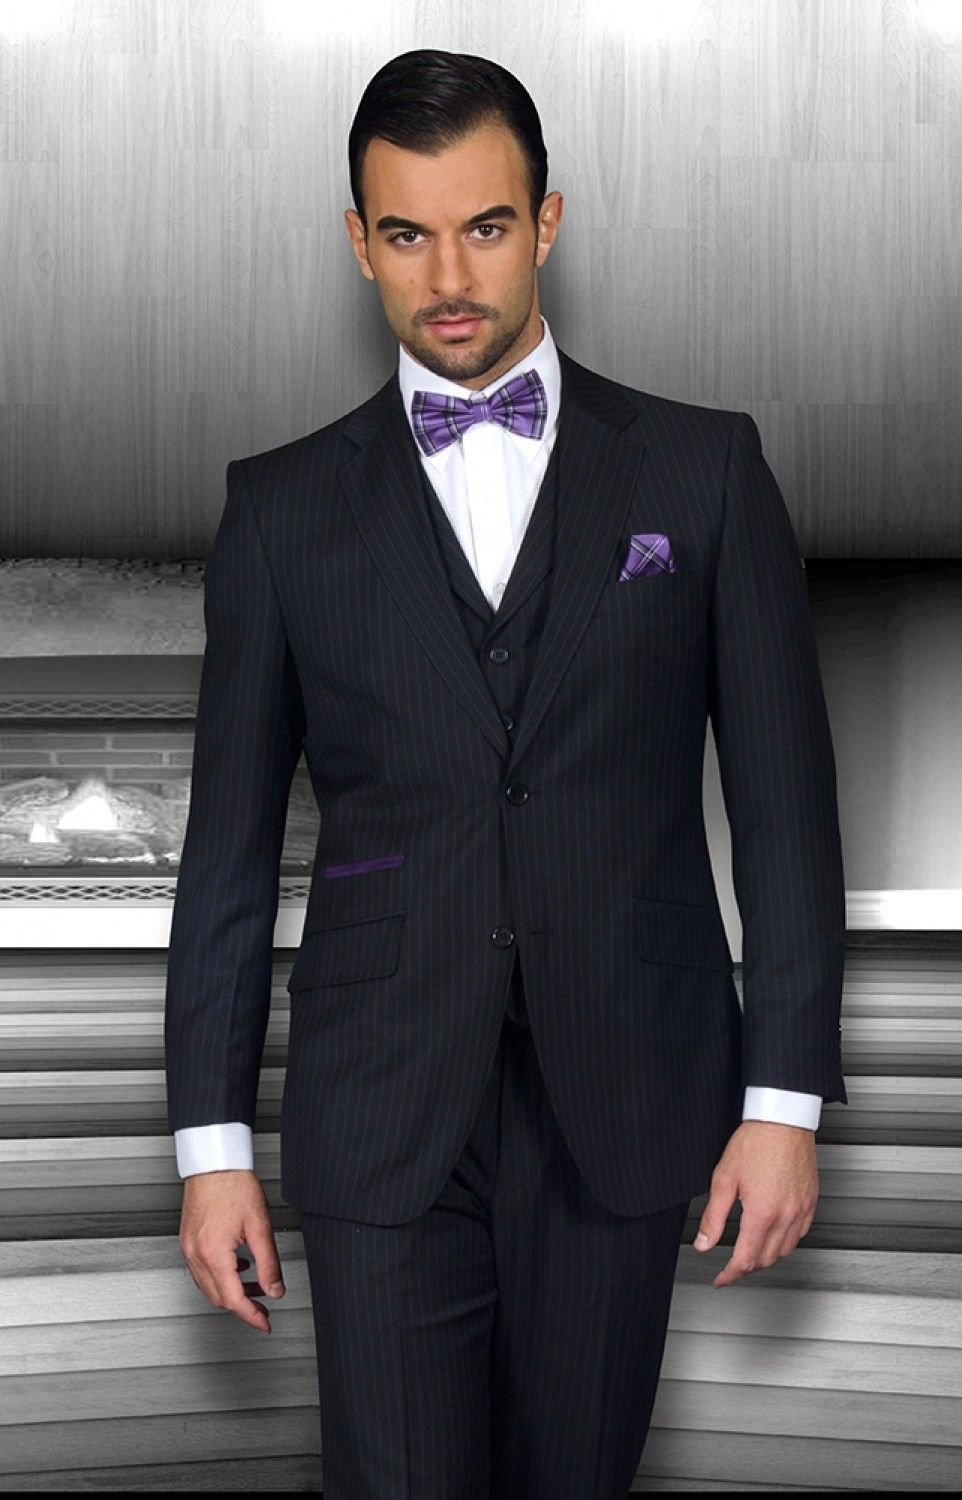 Imagini pentru black suit combinations for men | CHESTI DE ...